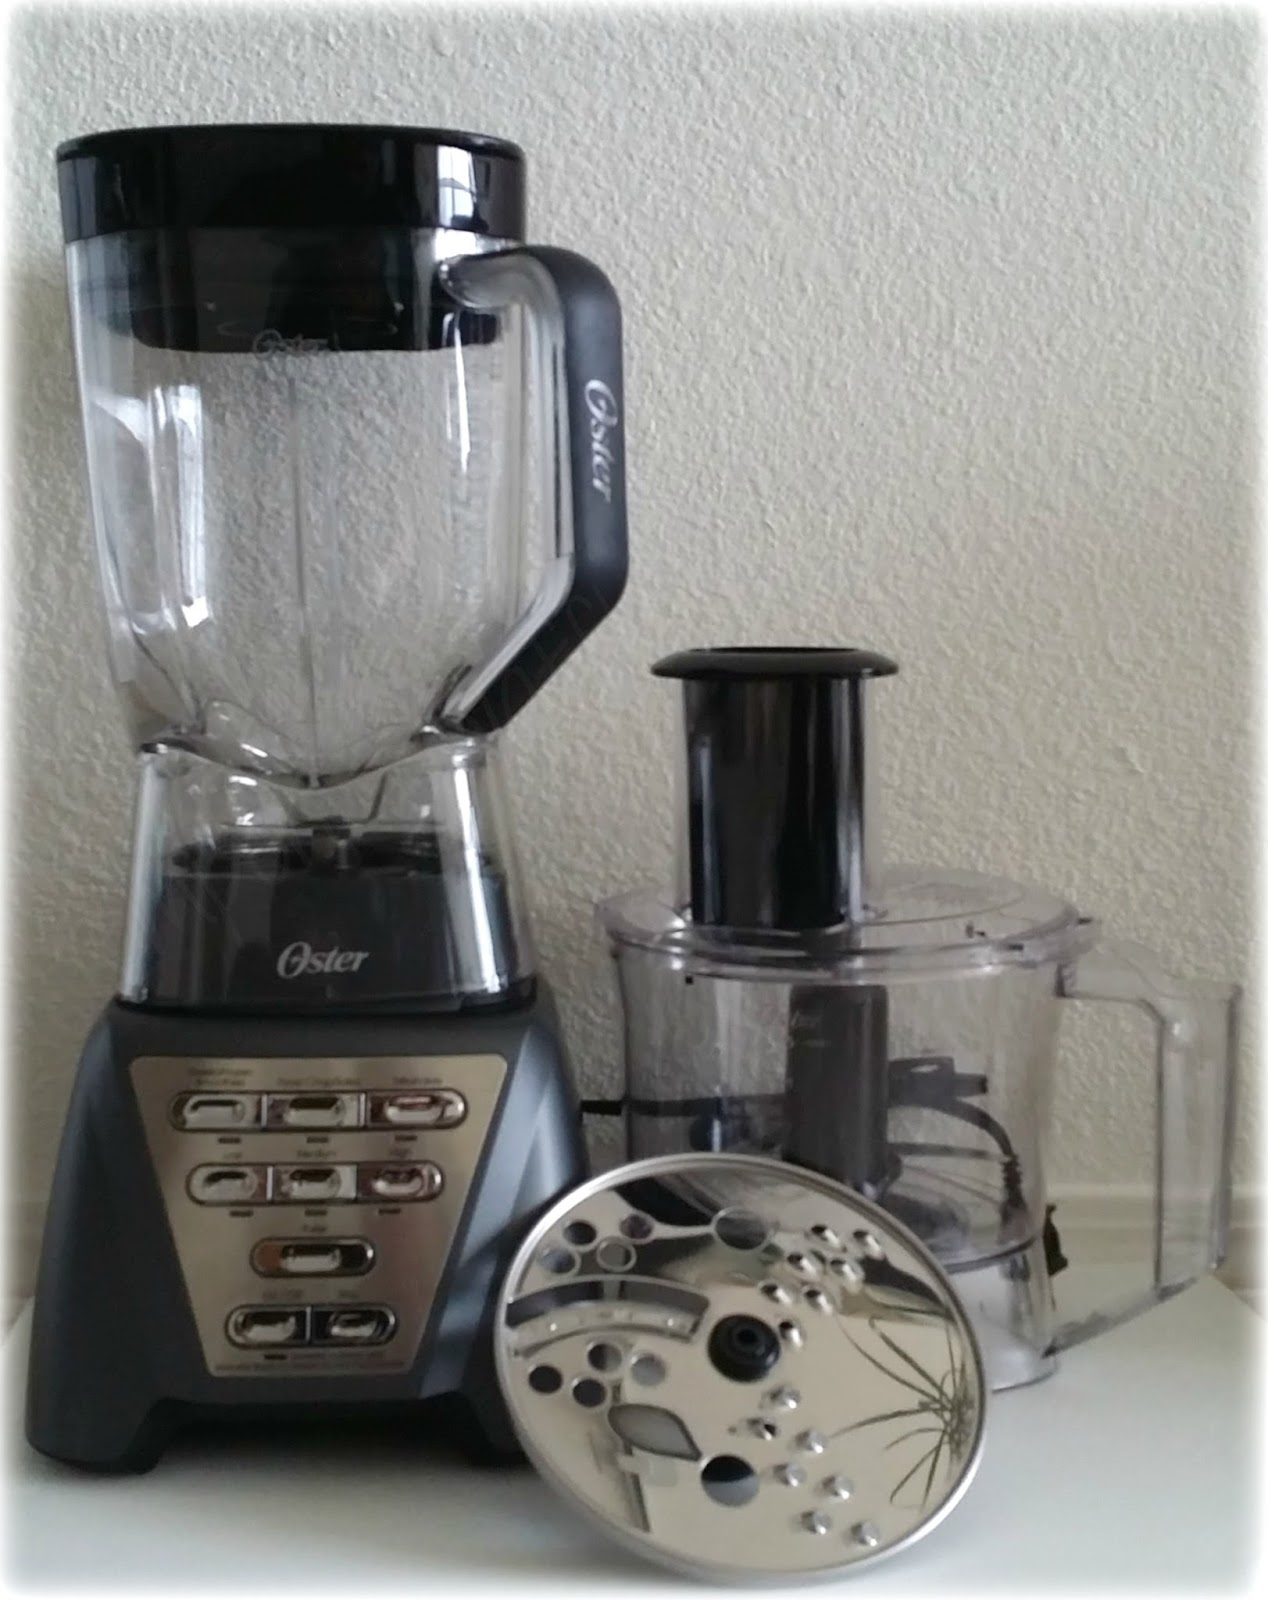 Oster Food Processor Instructions